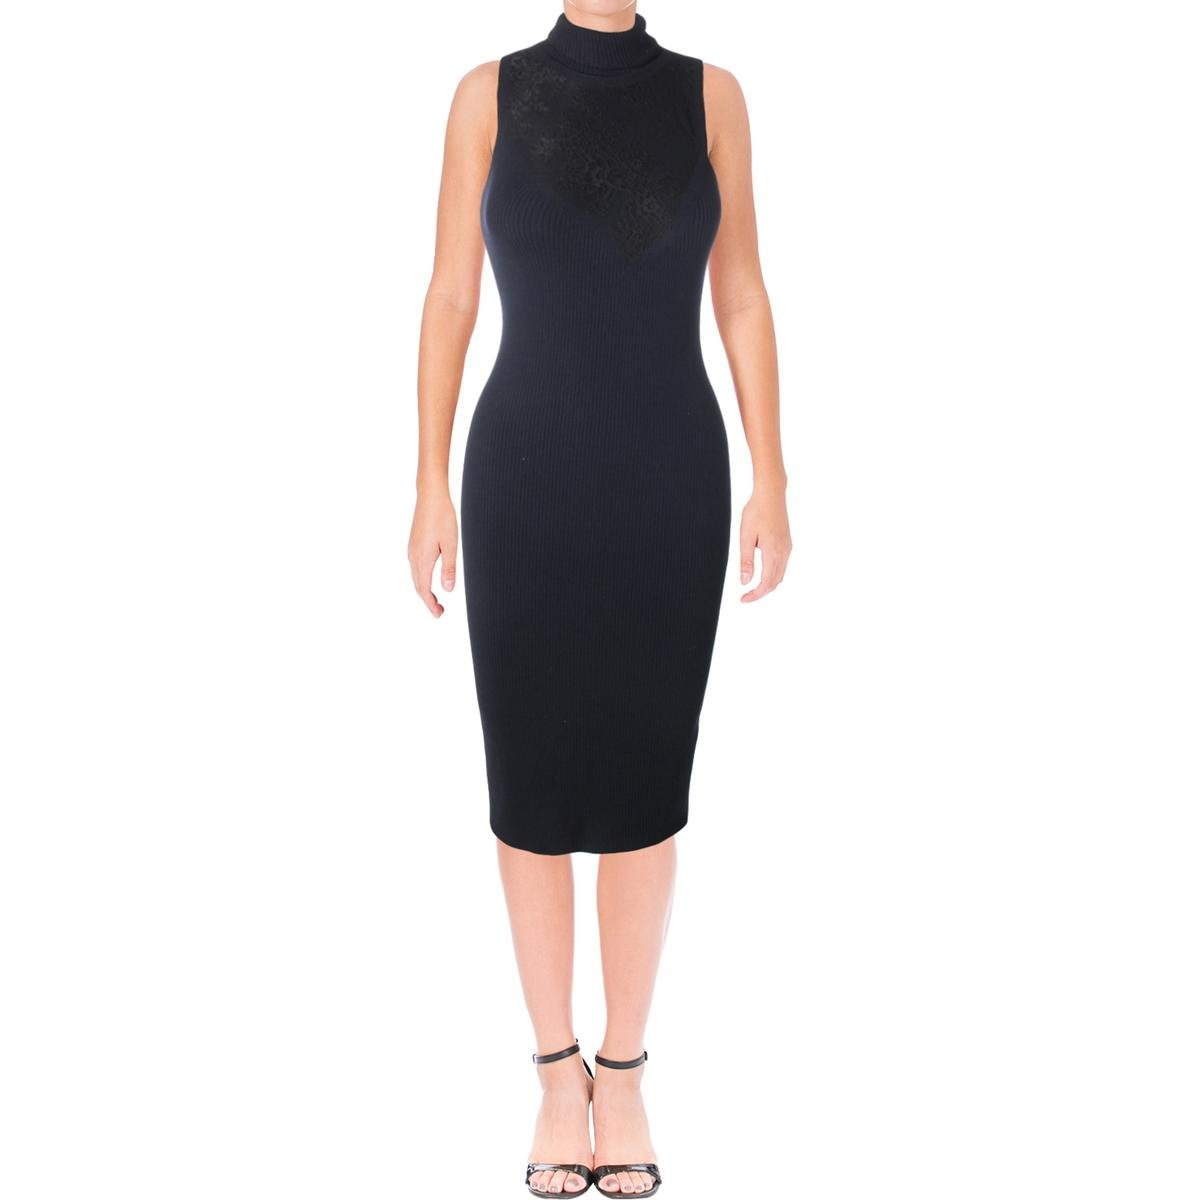 Rag & Bone Womens Carolyn Turtleneck Sleeveless Cocktail Dress